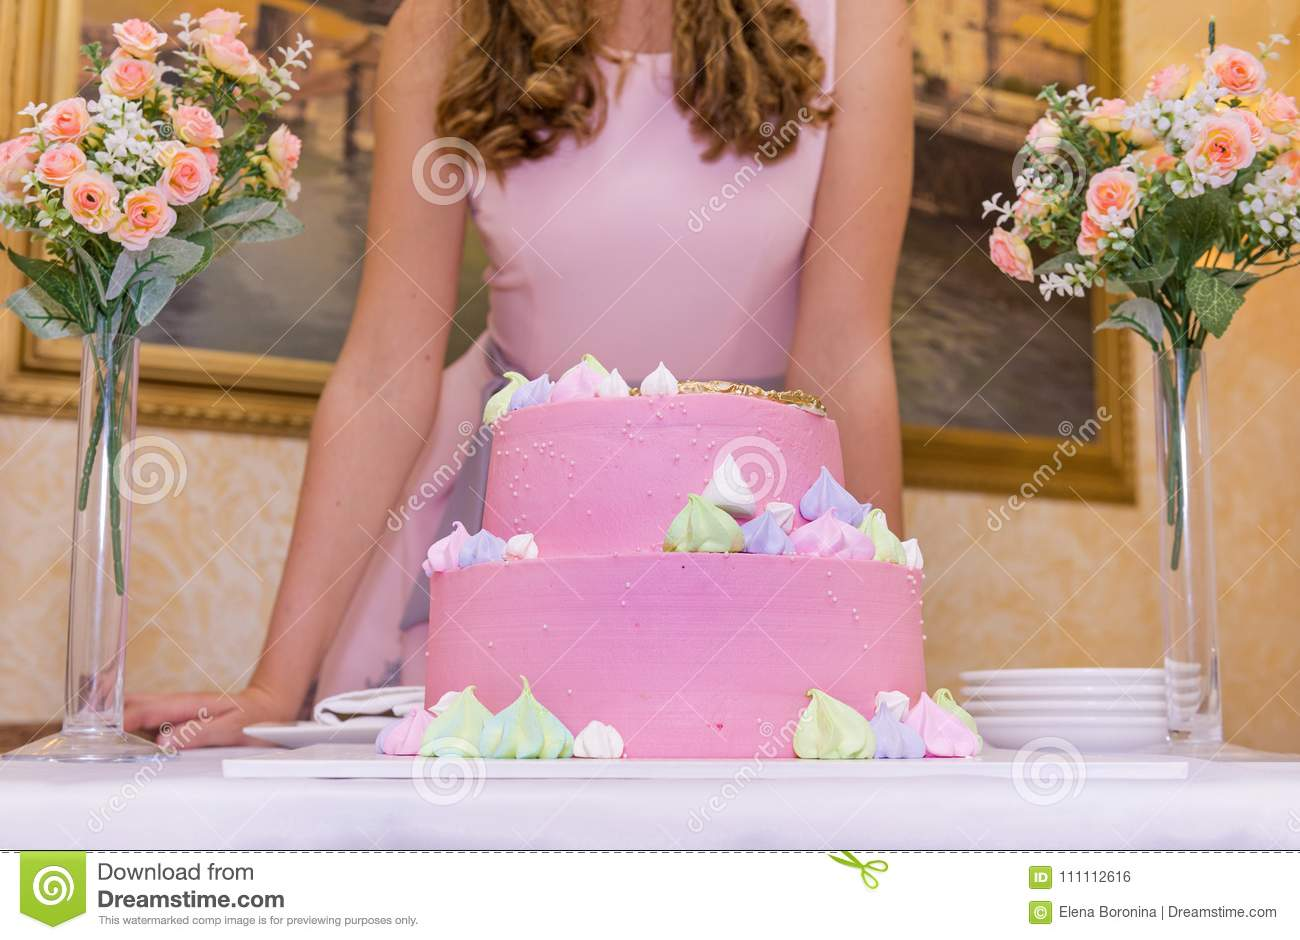 Girl In Pink Dress With Birthday Cake Covered Glaze 2 Bouquets Of Flowers